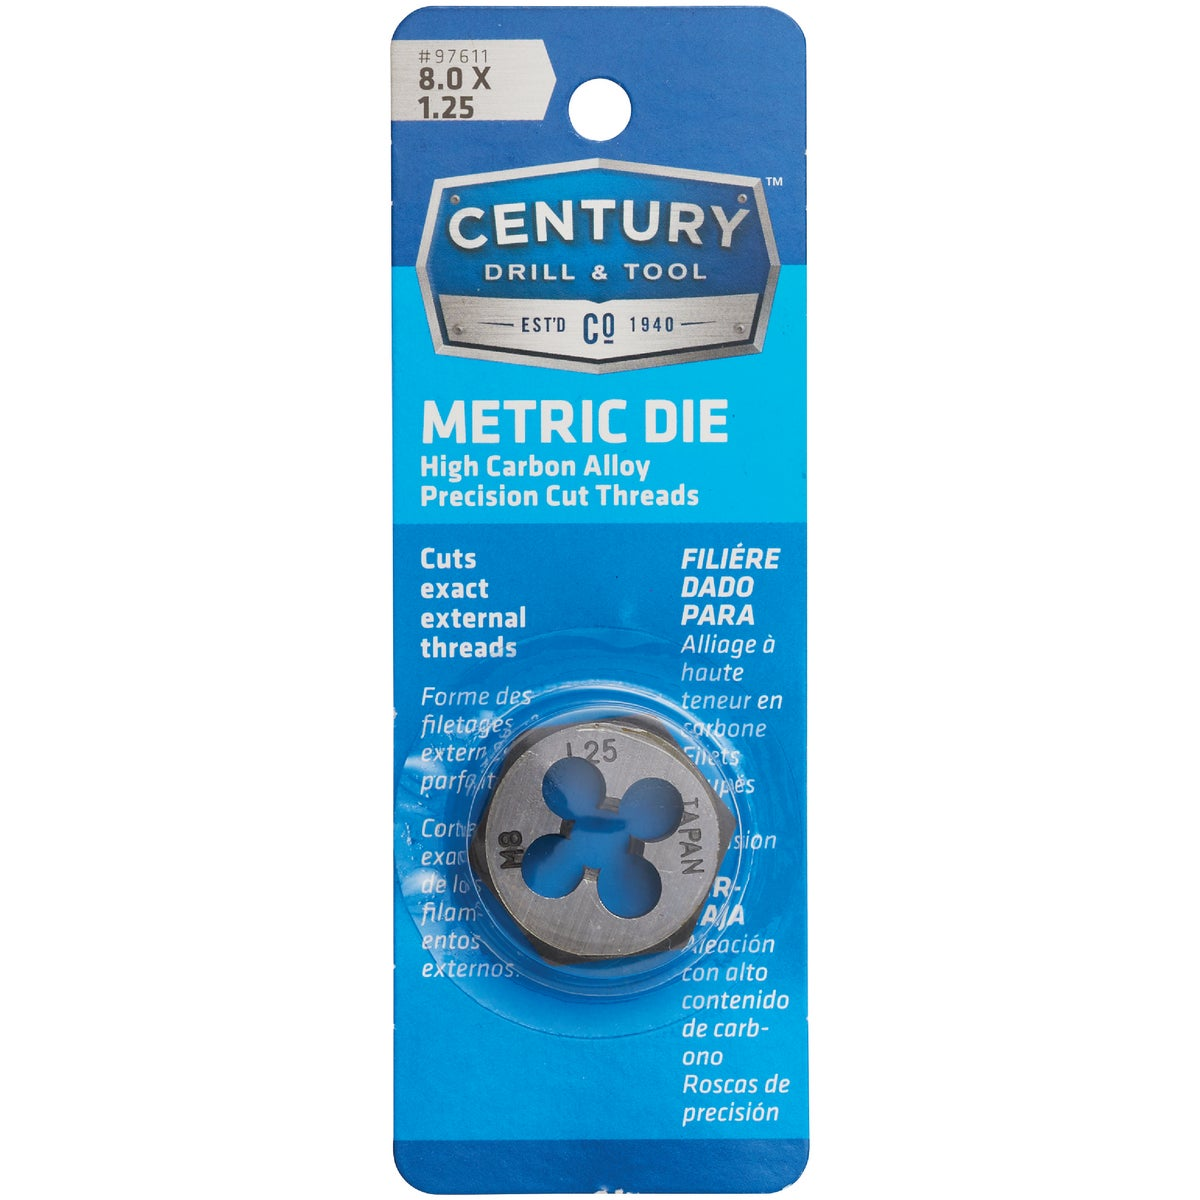 8MM-1.25 HEX DIE - 9734 by Irwin Industr Tool